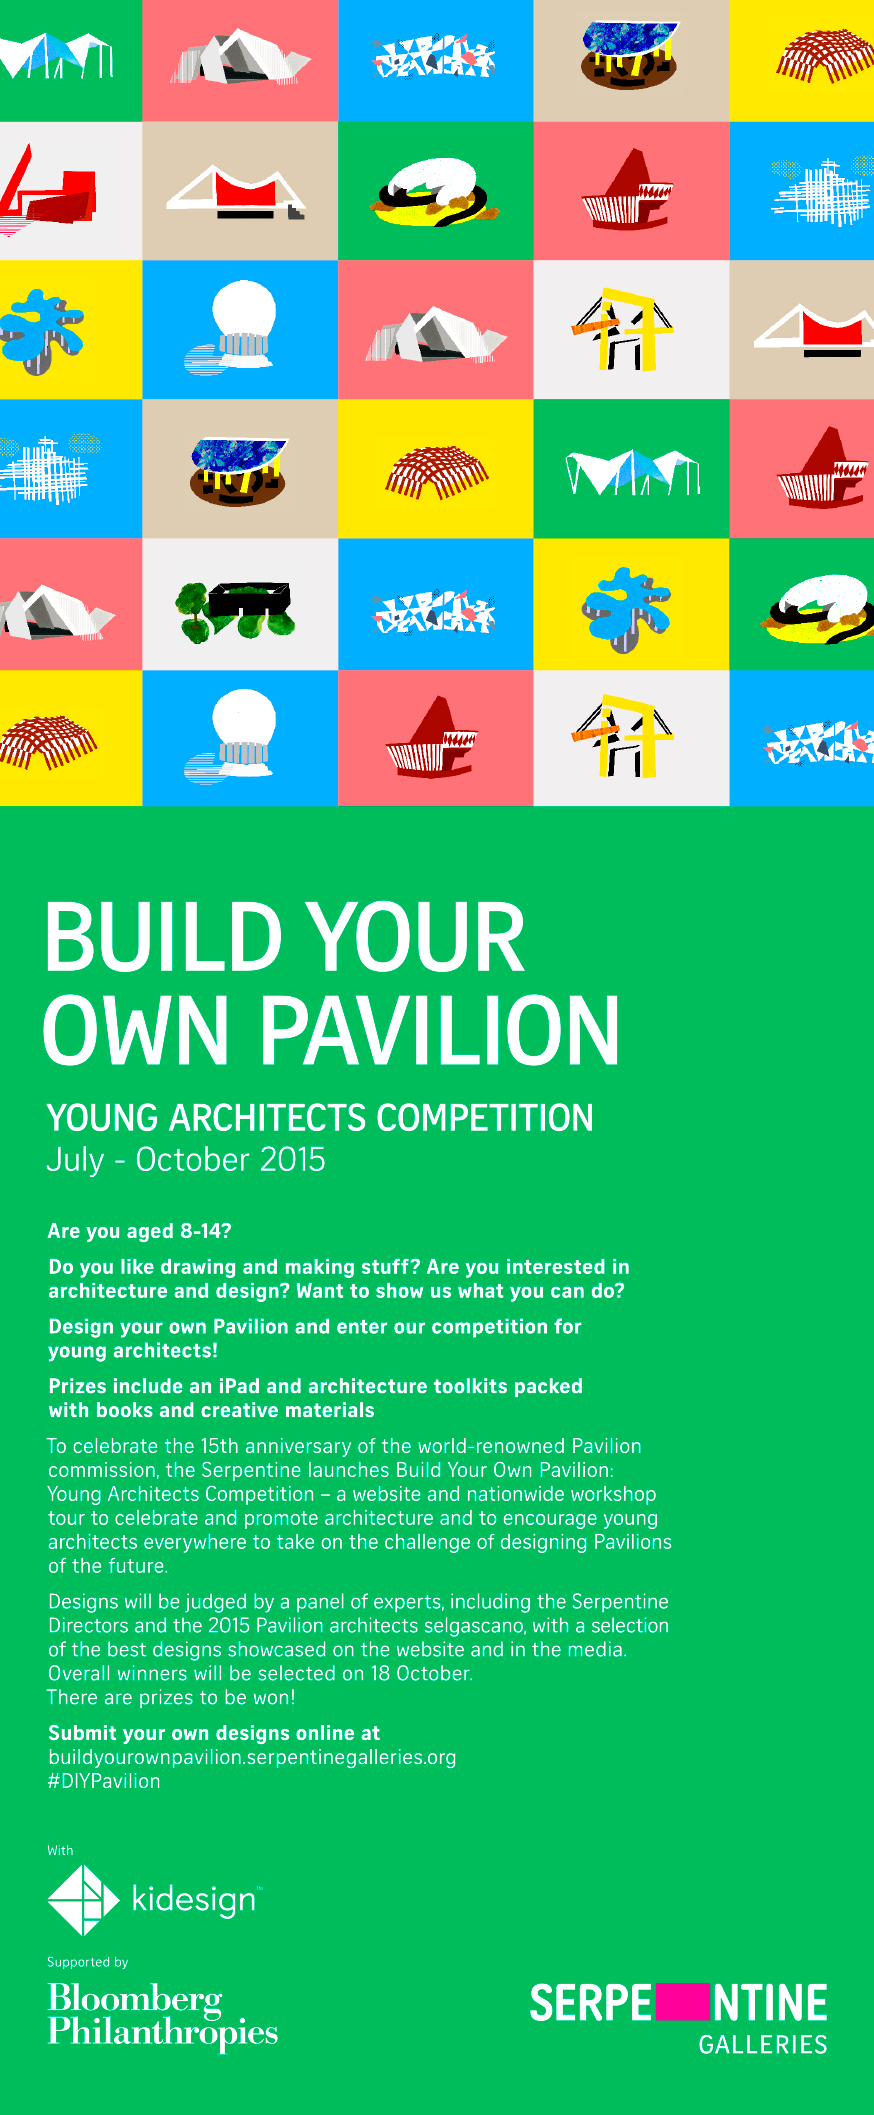 architects competition